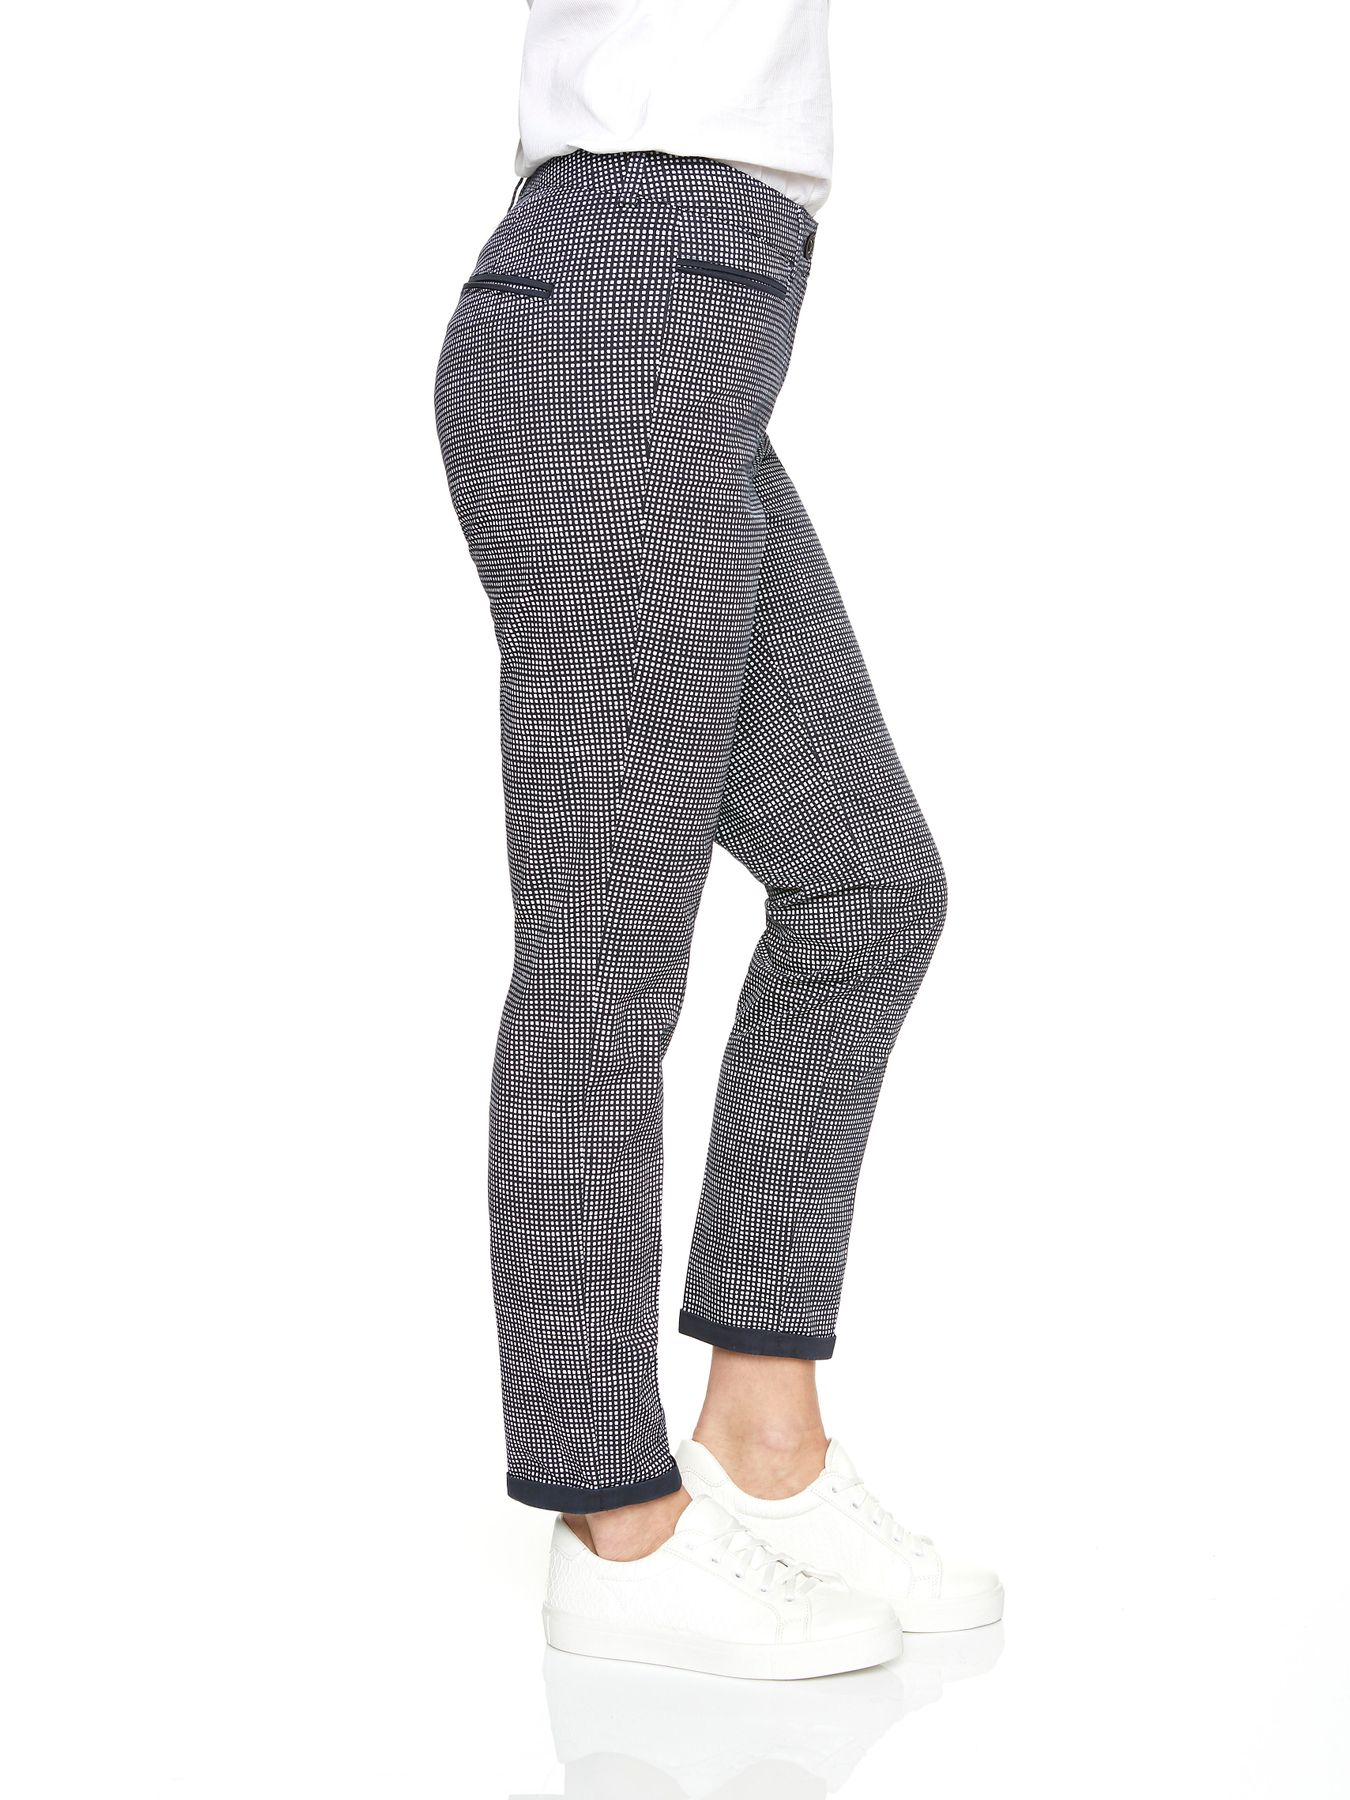 Atelier Gardeur - Slim Fit - Damen 5-Pocket Hose Denise1 (641381) – Bild 3